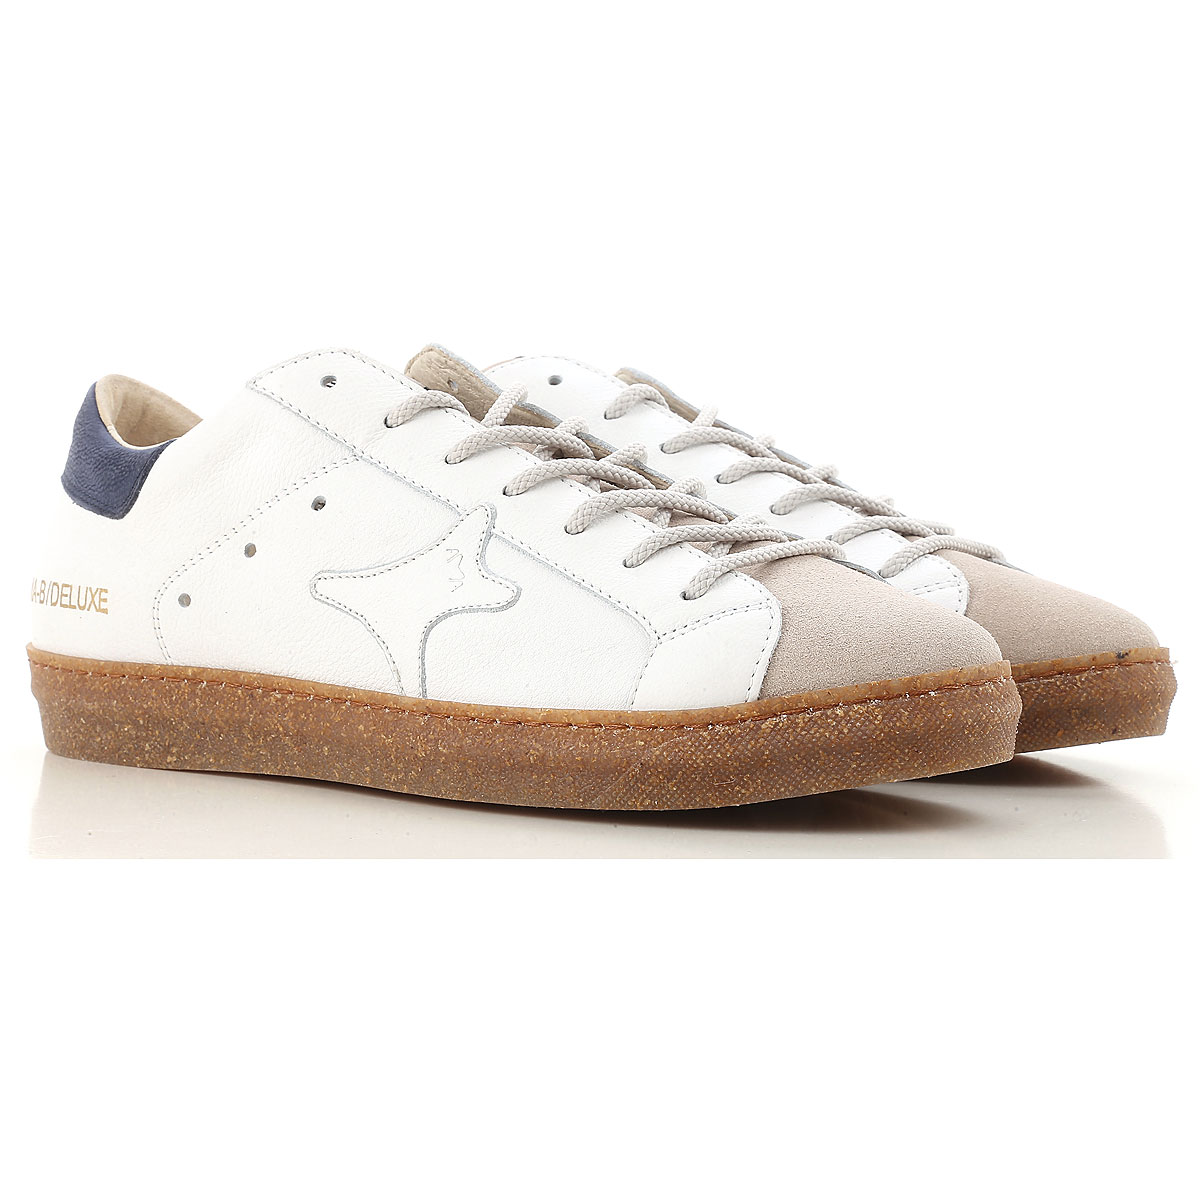 Image of Ama Brand Sneakers for Men On Sale, White, Leather, 2017, EUR 40 - UK 6 - USA 7 EUR 43 - UK 9 - USA 9.5 EUR 45 - UK 10.5 - USA 11